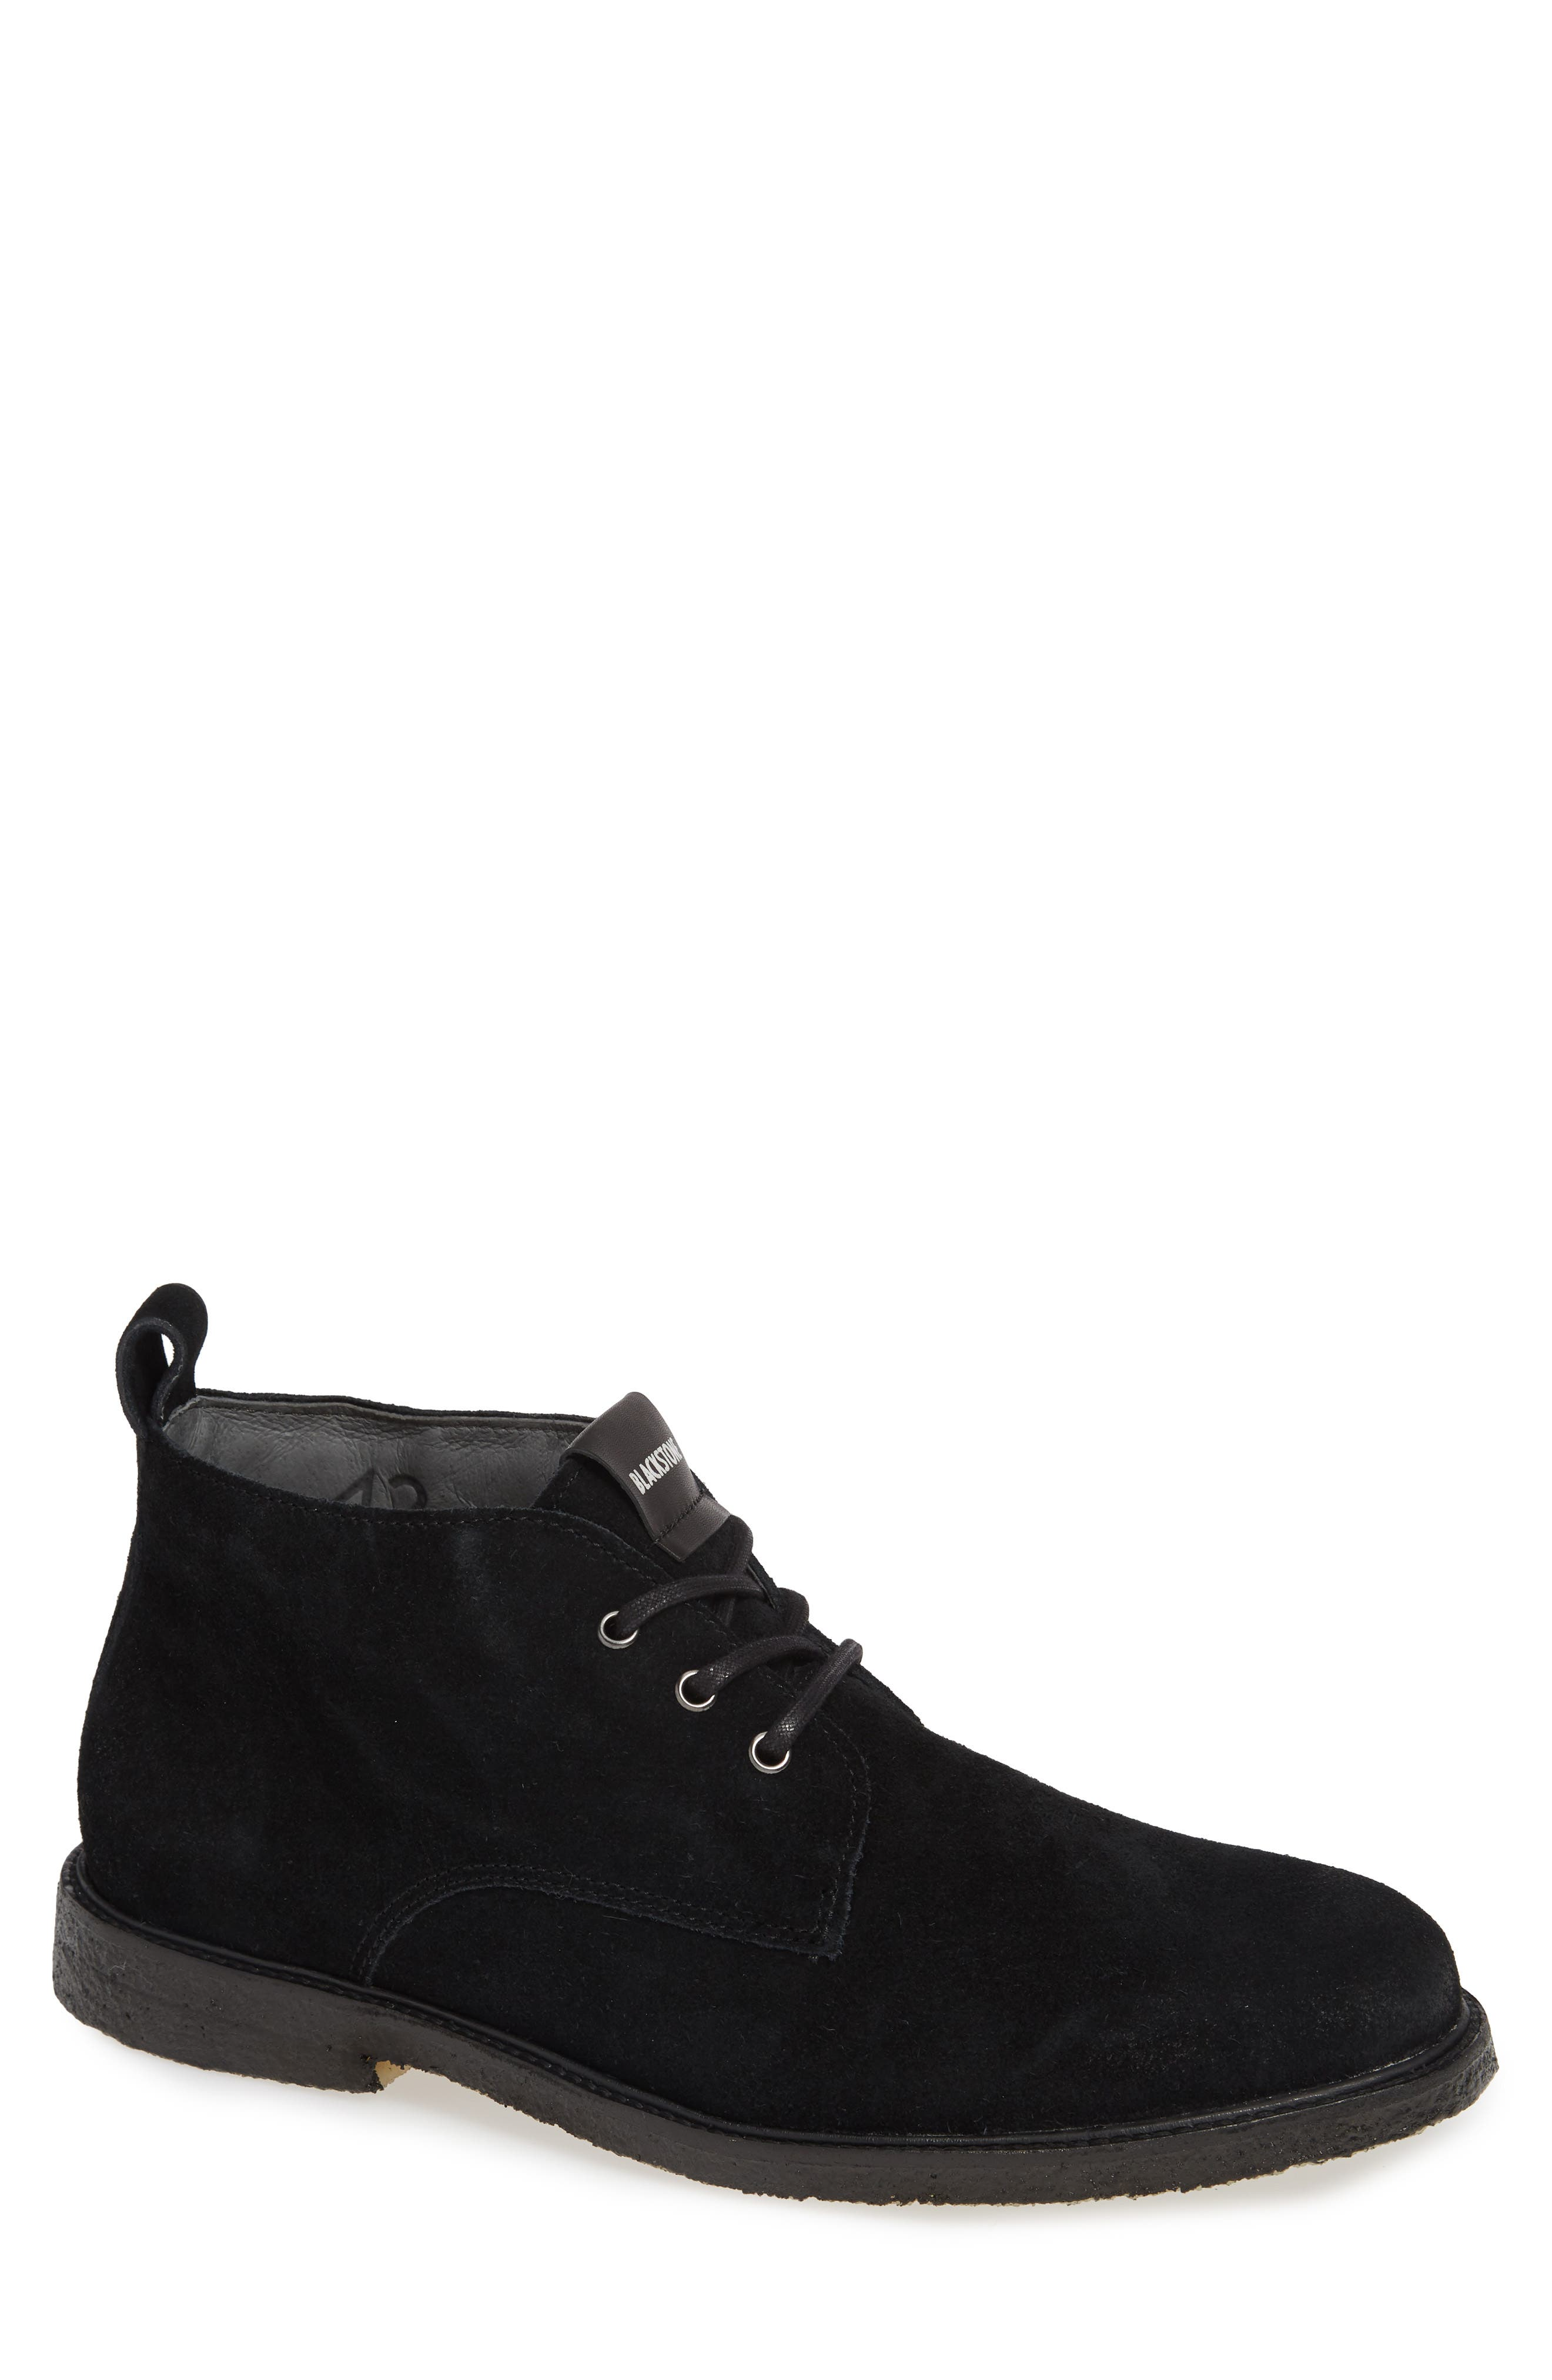 QM82 Chukka Boot,                         Main,                         color, BLACK